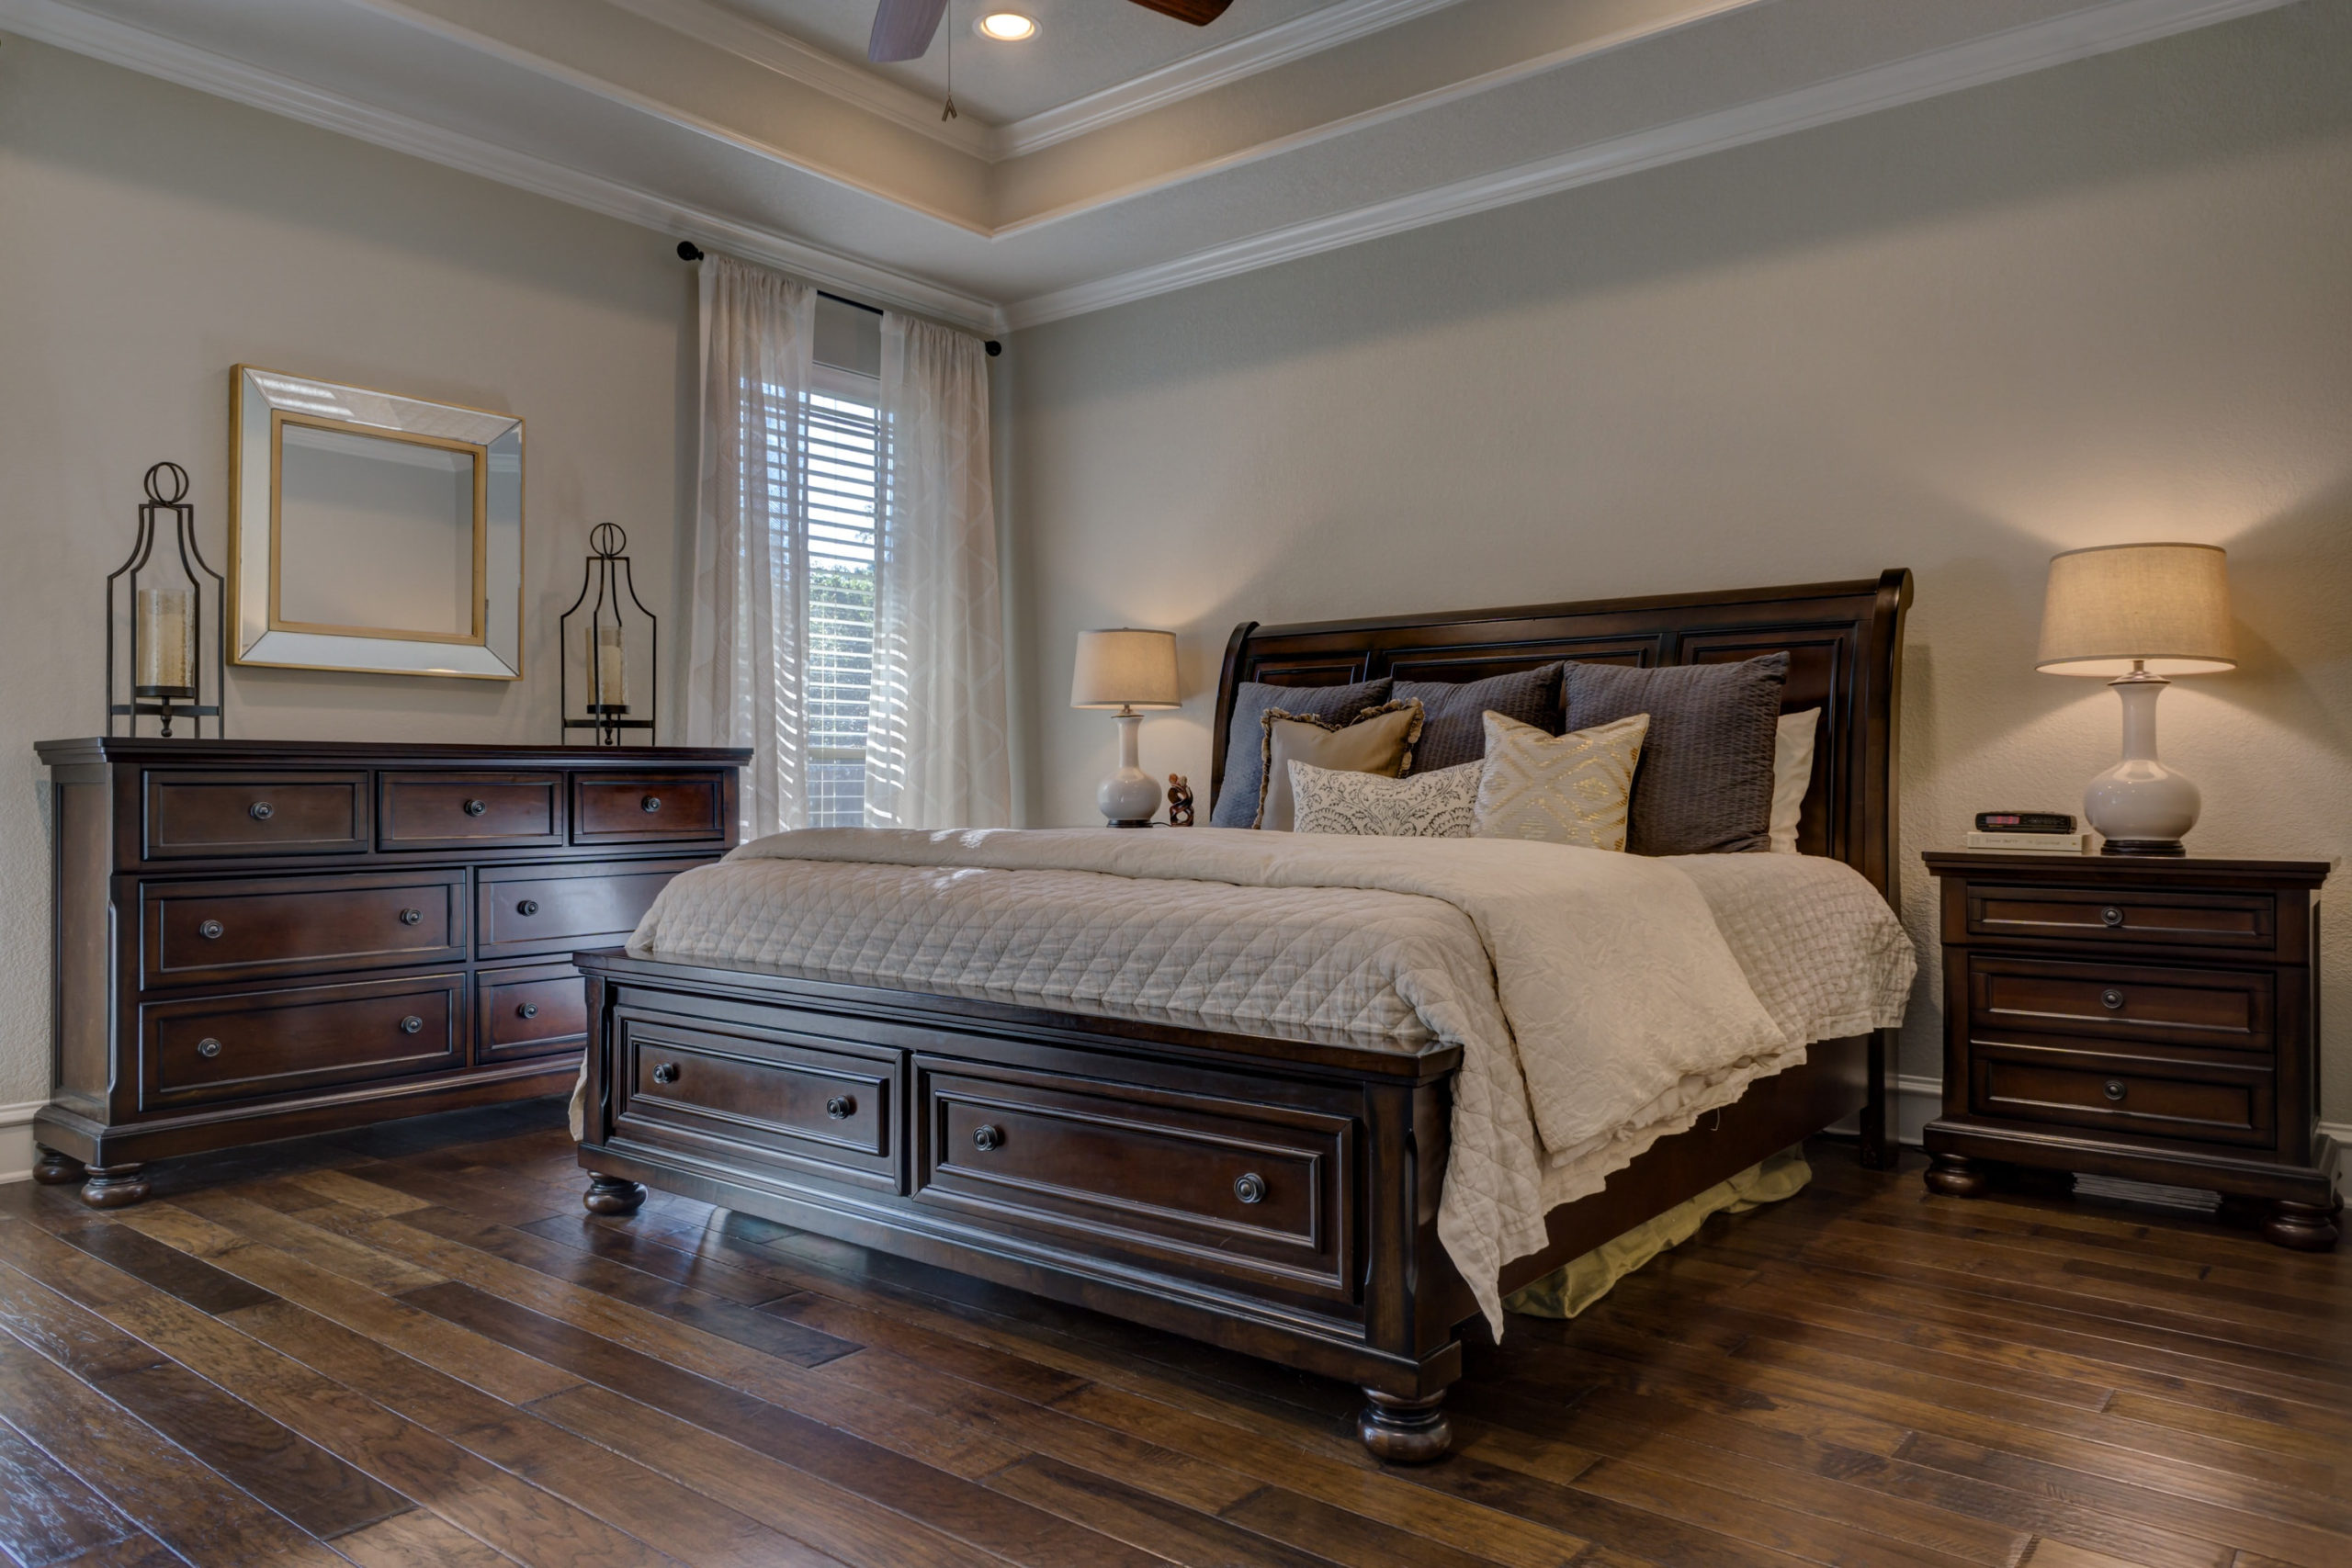 Bedroom with hard wood flooring.